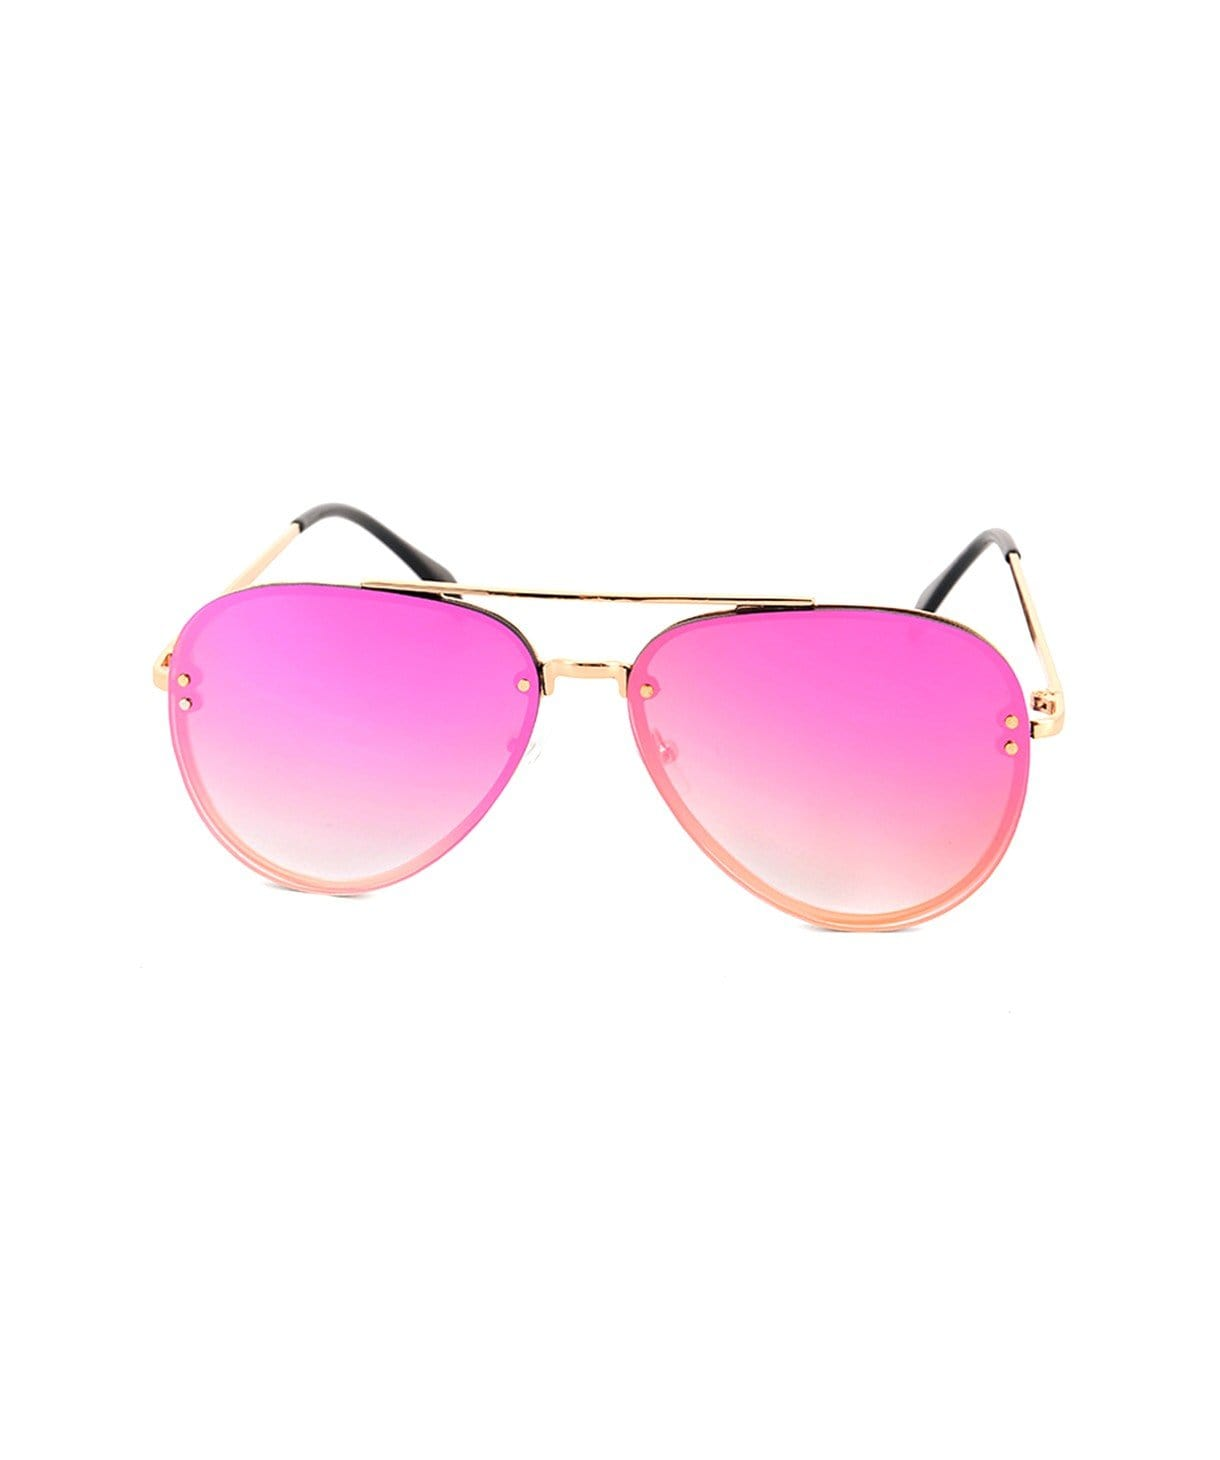 Blush Reflector Sunglasses - Uptownie